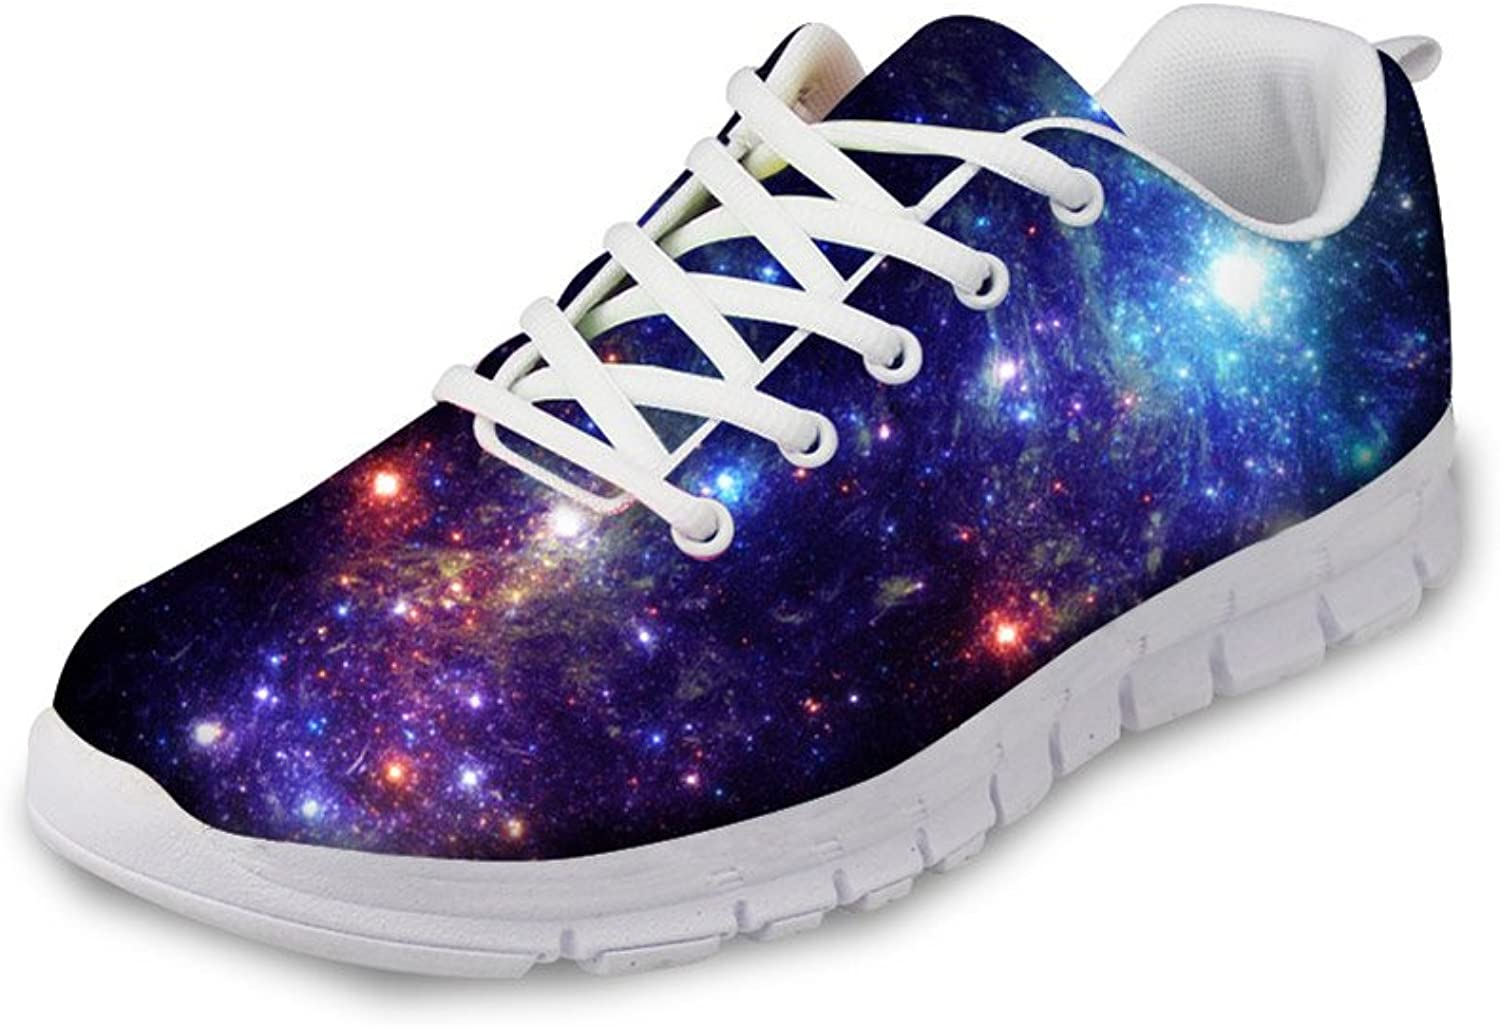 Chaqlin Fashion Galaxy Runnning shoes Breathable Men & Women Breathable Mesh Sneakers